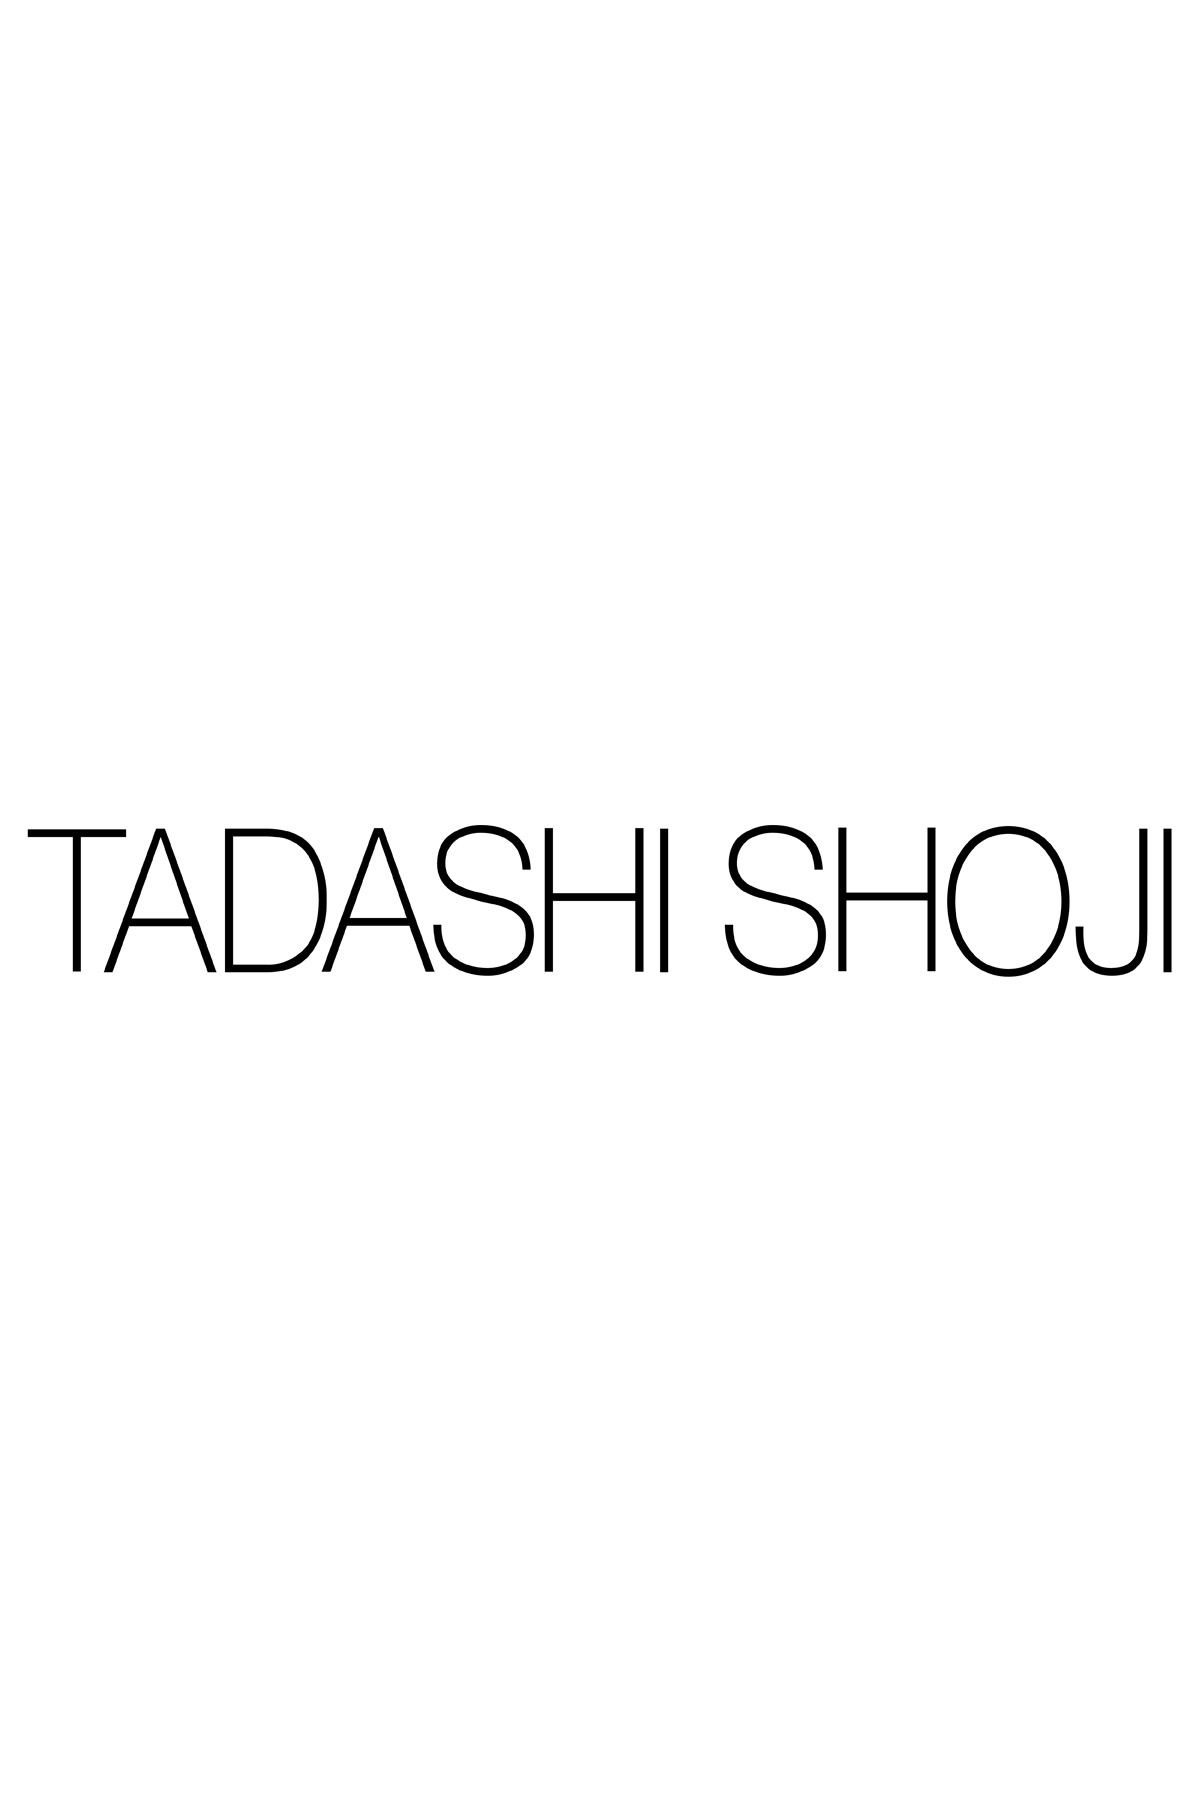 Tadashi Shoji - Queen Anne Neckline Corded Embroidery On Tulle Dress - Detail